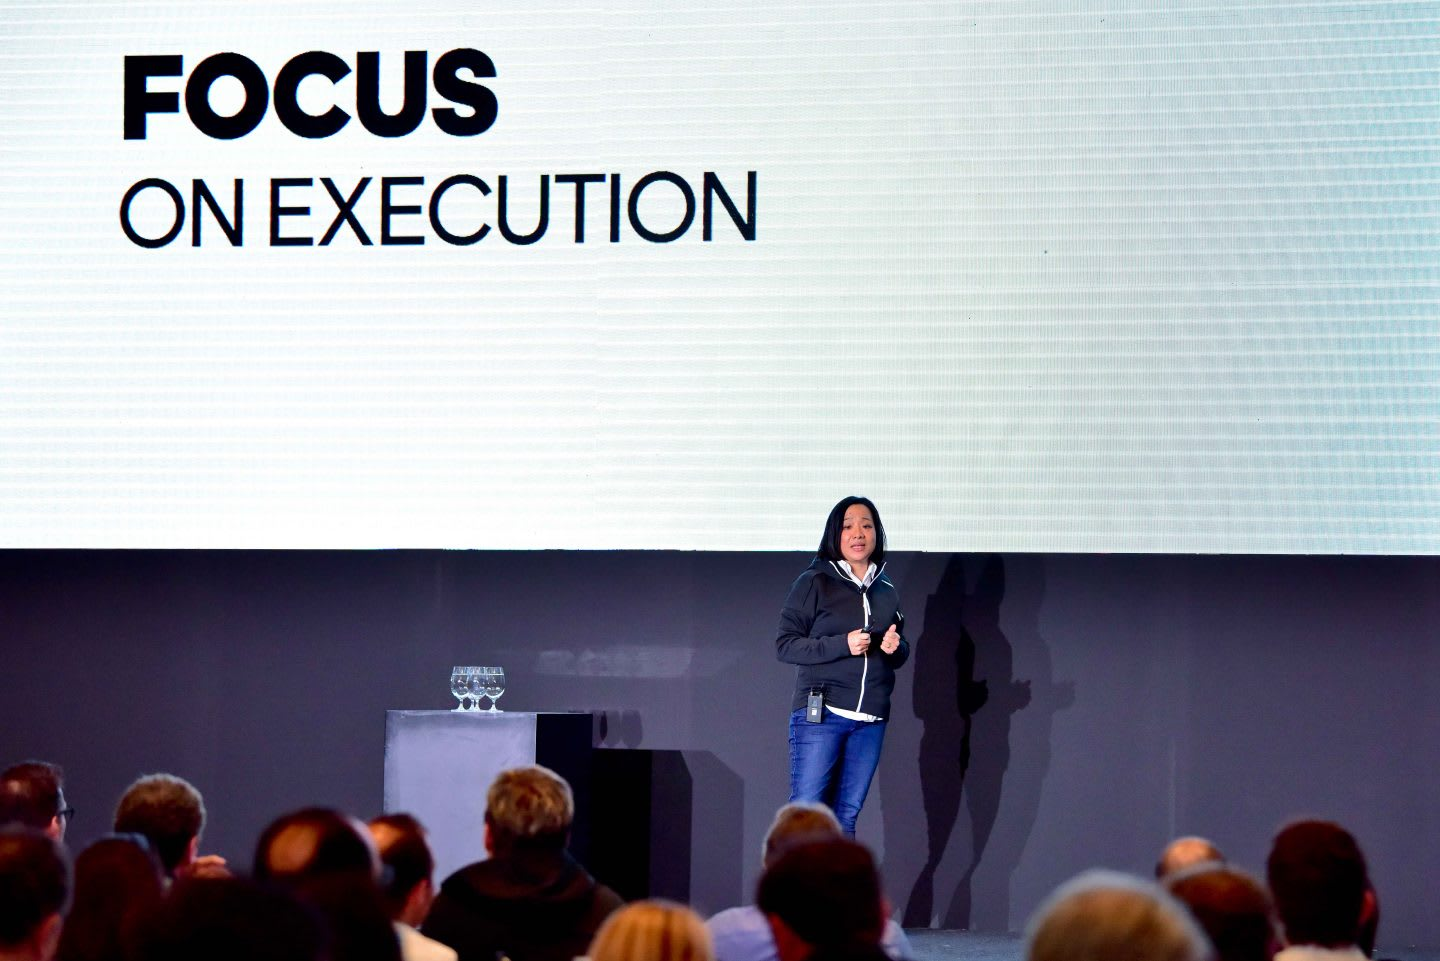 Woman speaking on stage in front of a group of people, public, speaking, Hoa Ly, adidas, woman, leadership, leader, Sourcing, Asia